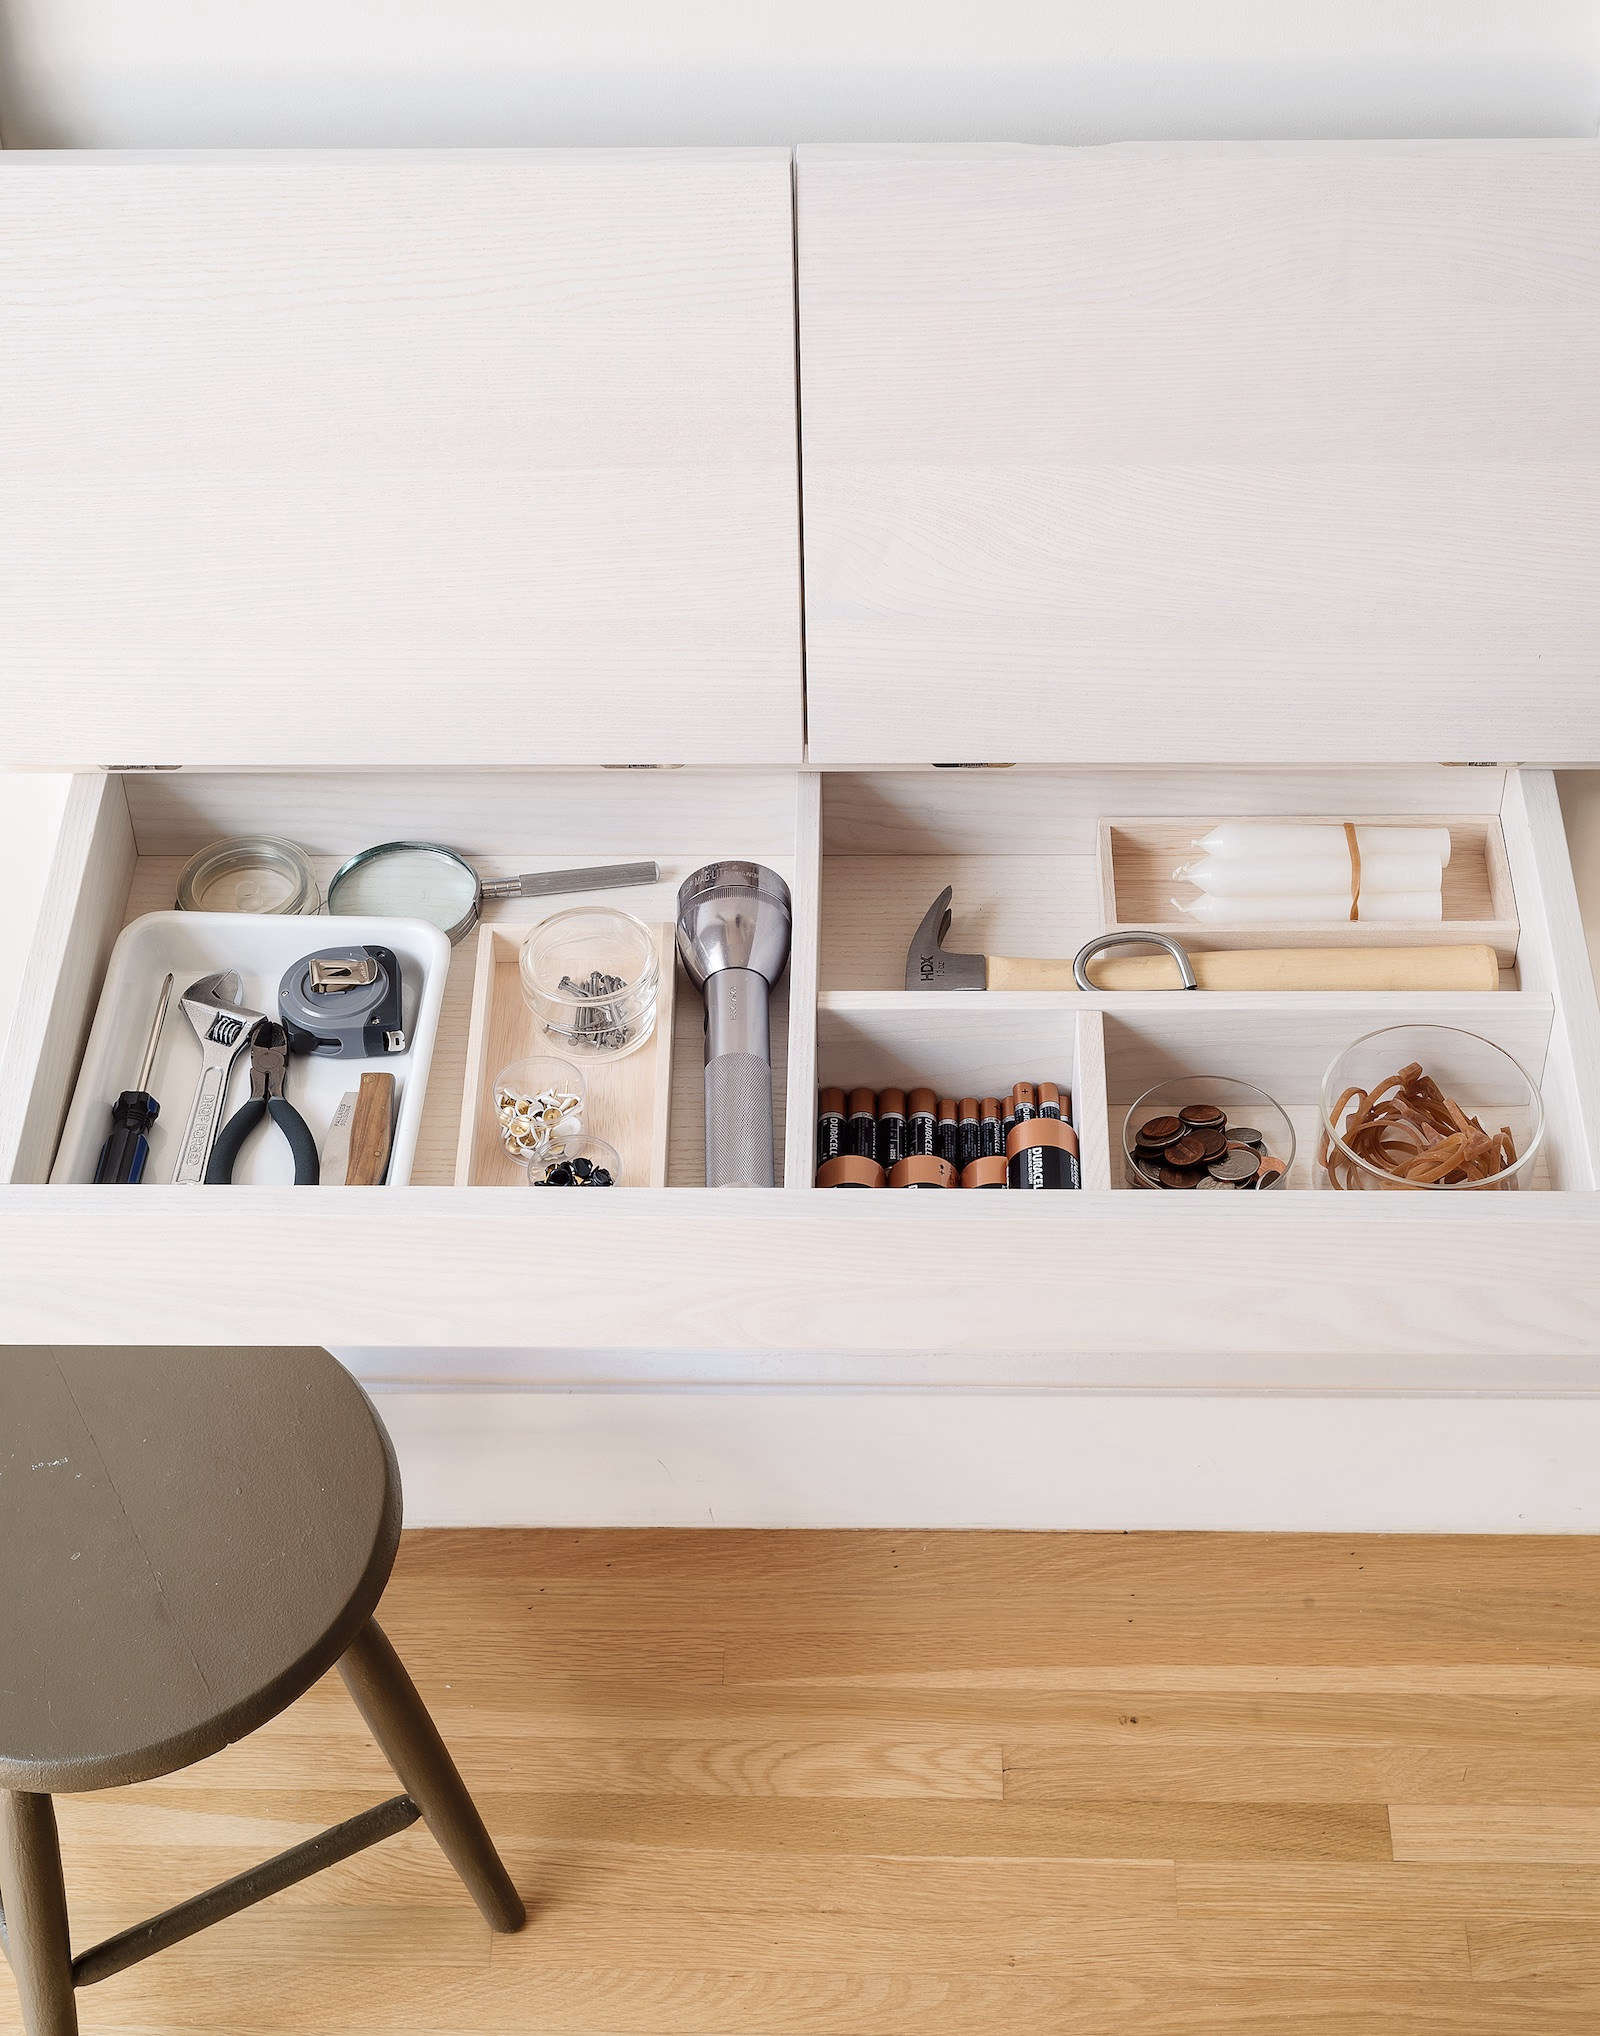 Junk Drawer in Organized Home Book by Matthew Williams